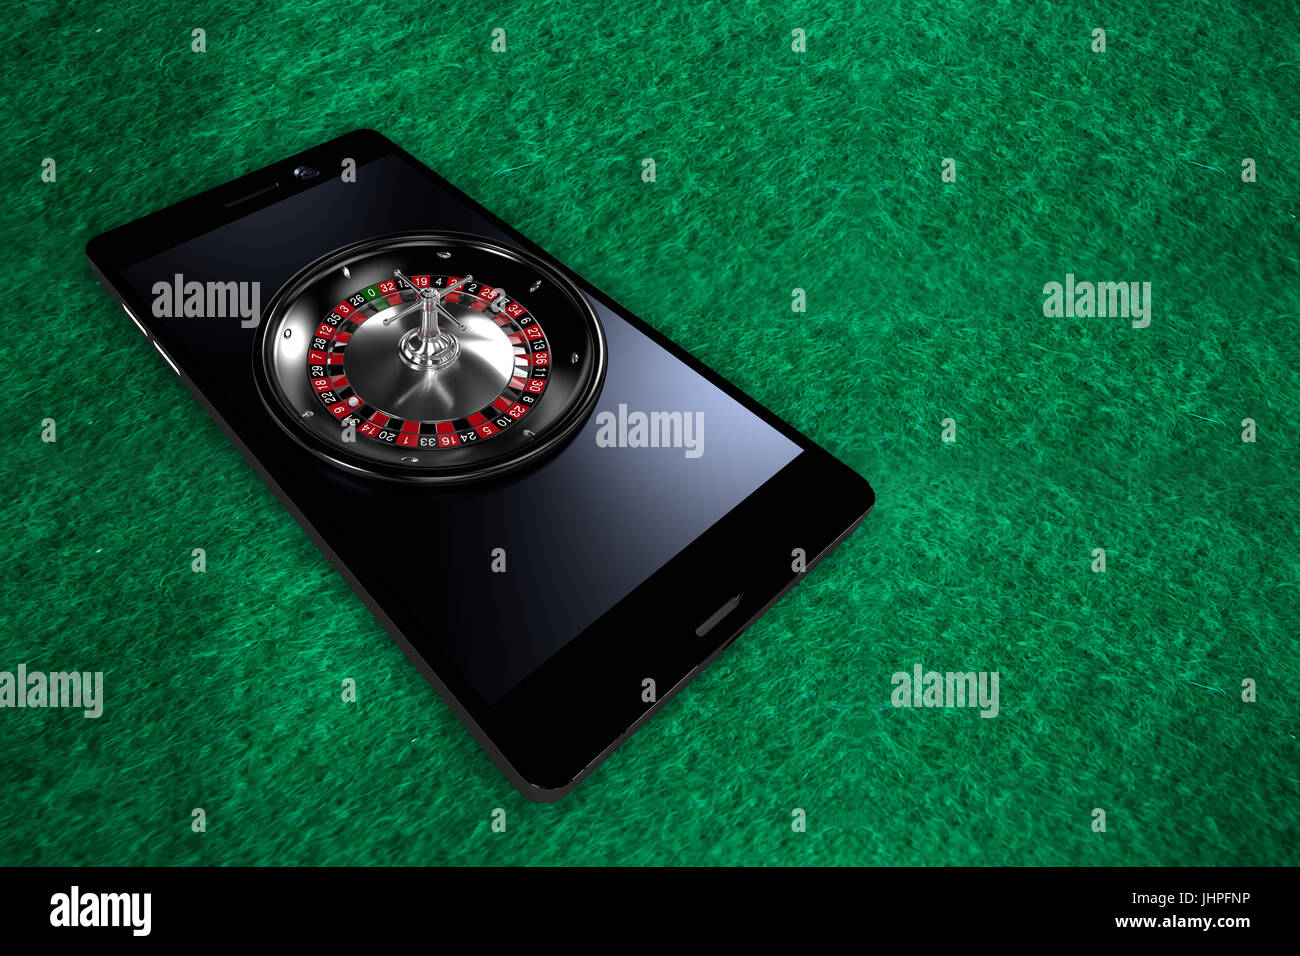 3D image of smartphone with roulette wheel against full